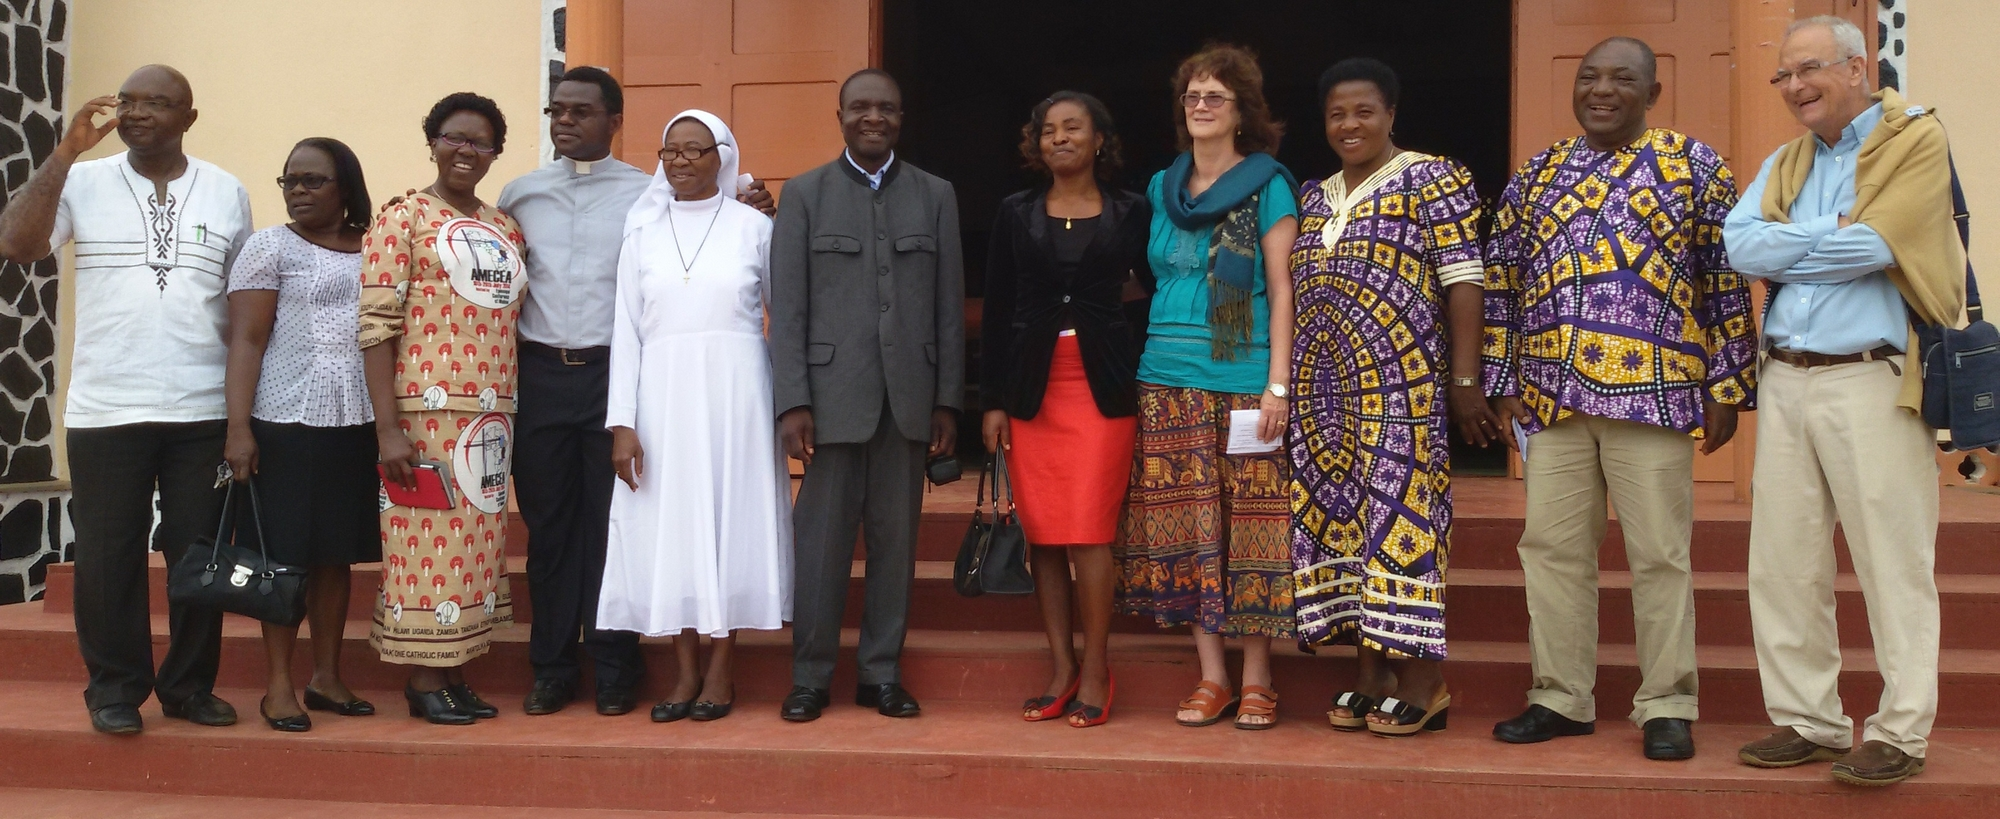 AFLF Board and Unit members after the mass - Les membres du bureau et des unités d la FAAF à la sortie de la messe 2015